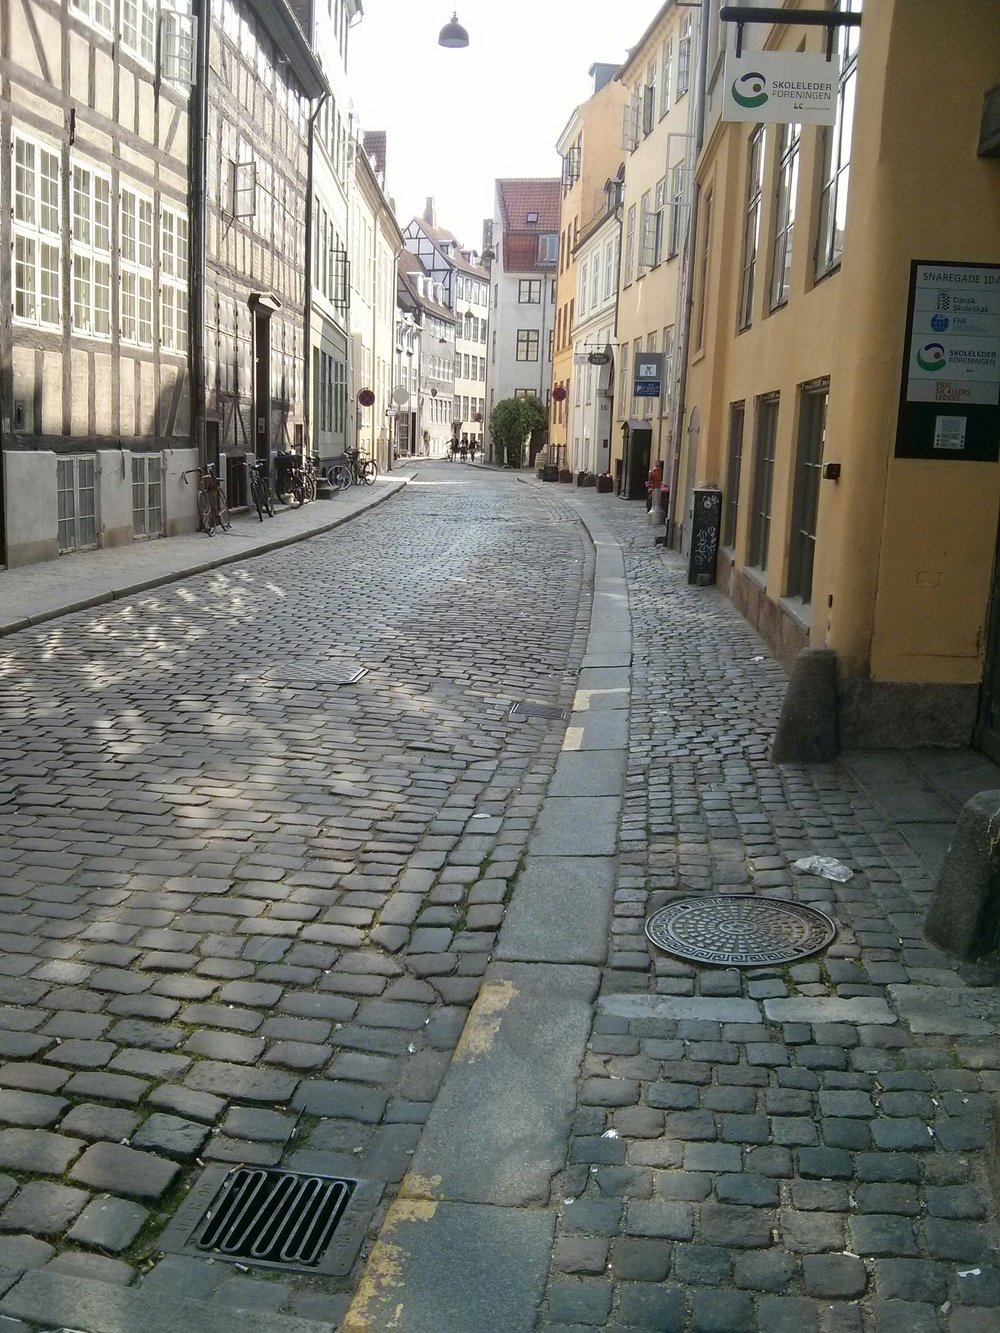 just a lovely pieceful street in the heart of copenhagen